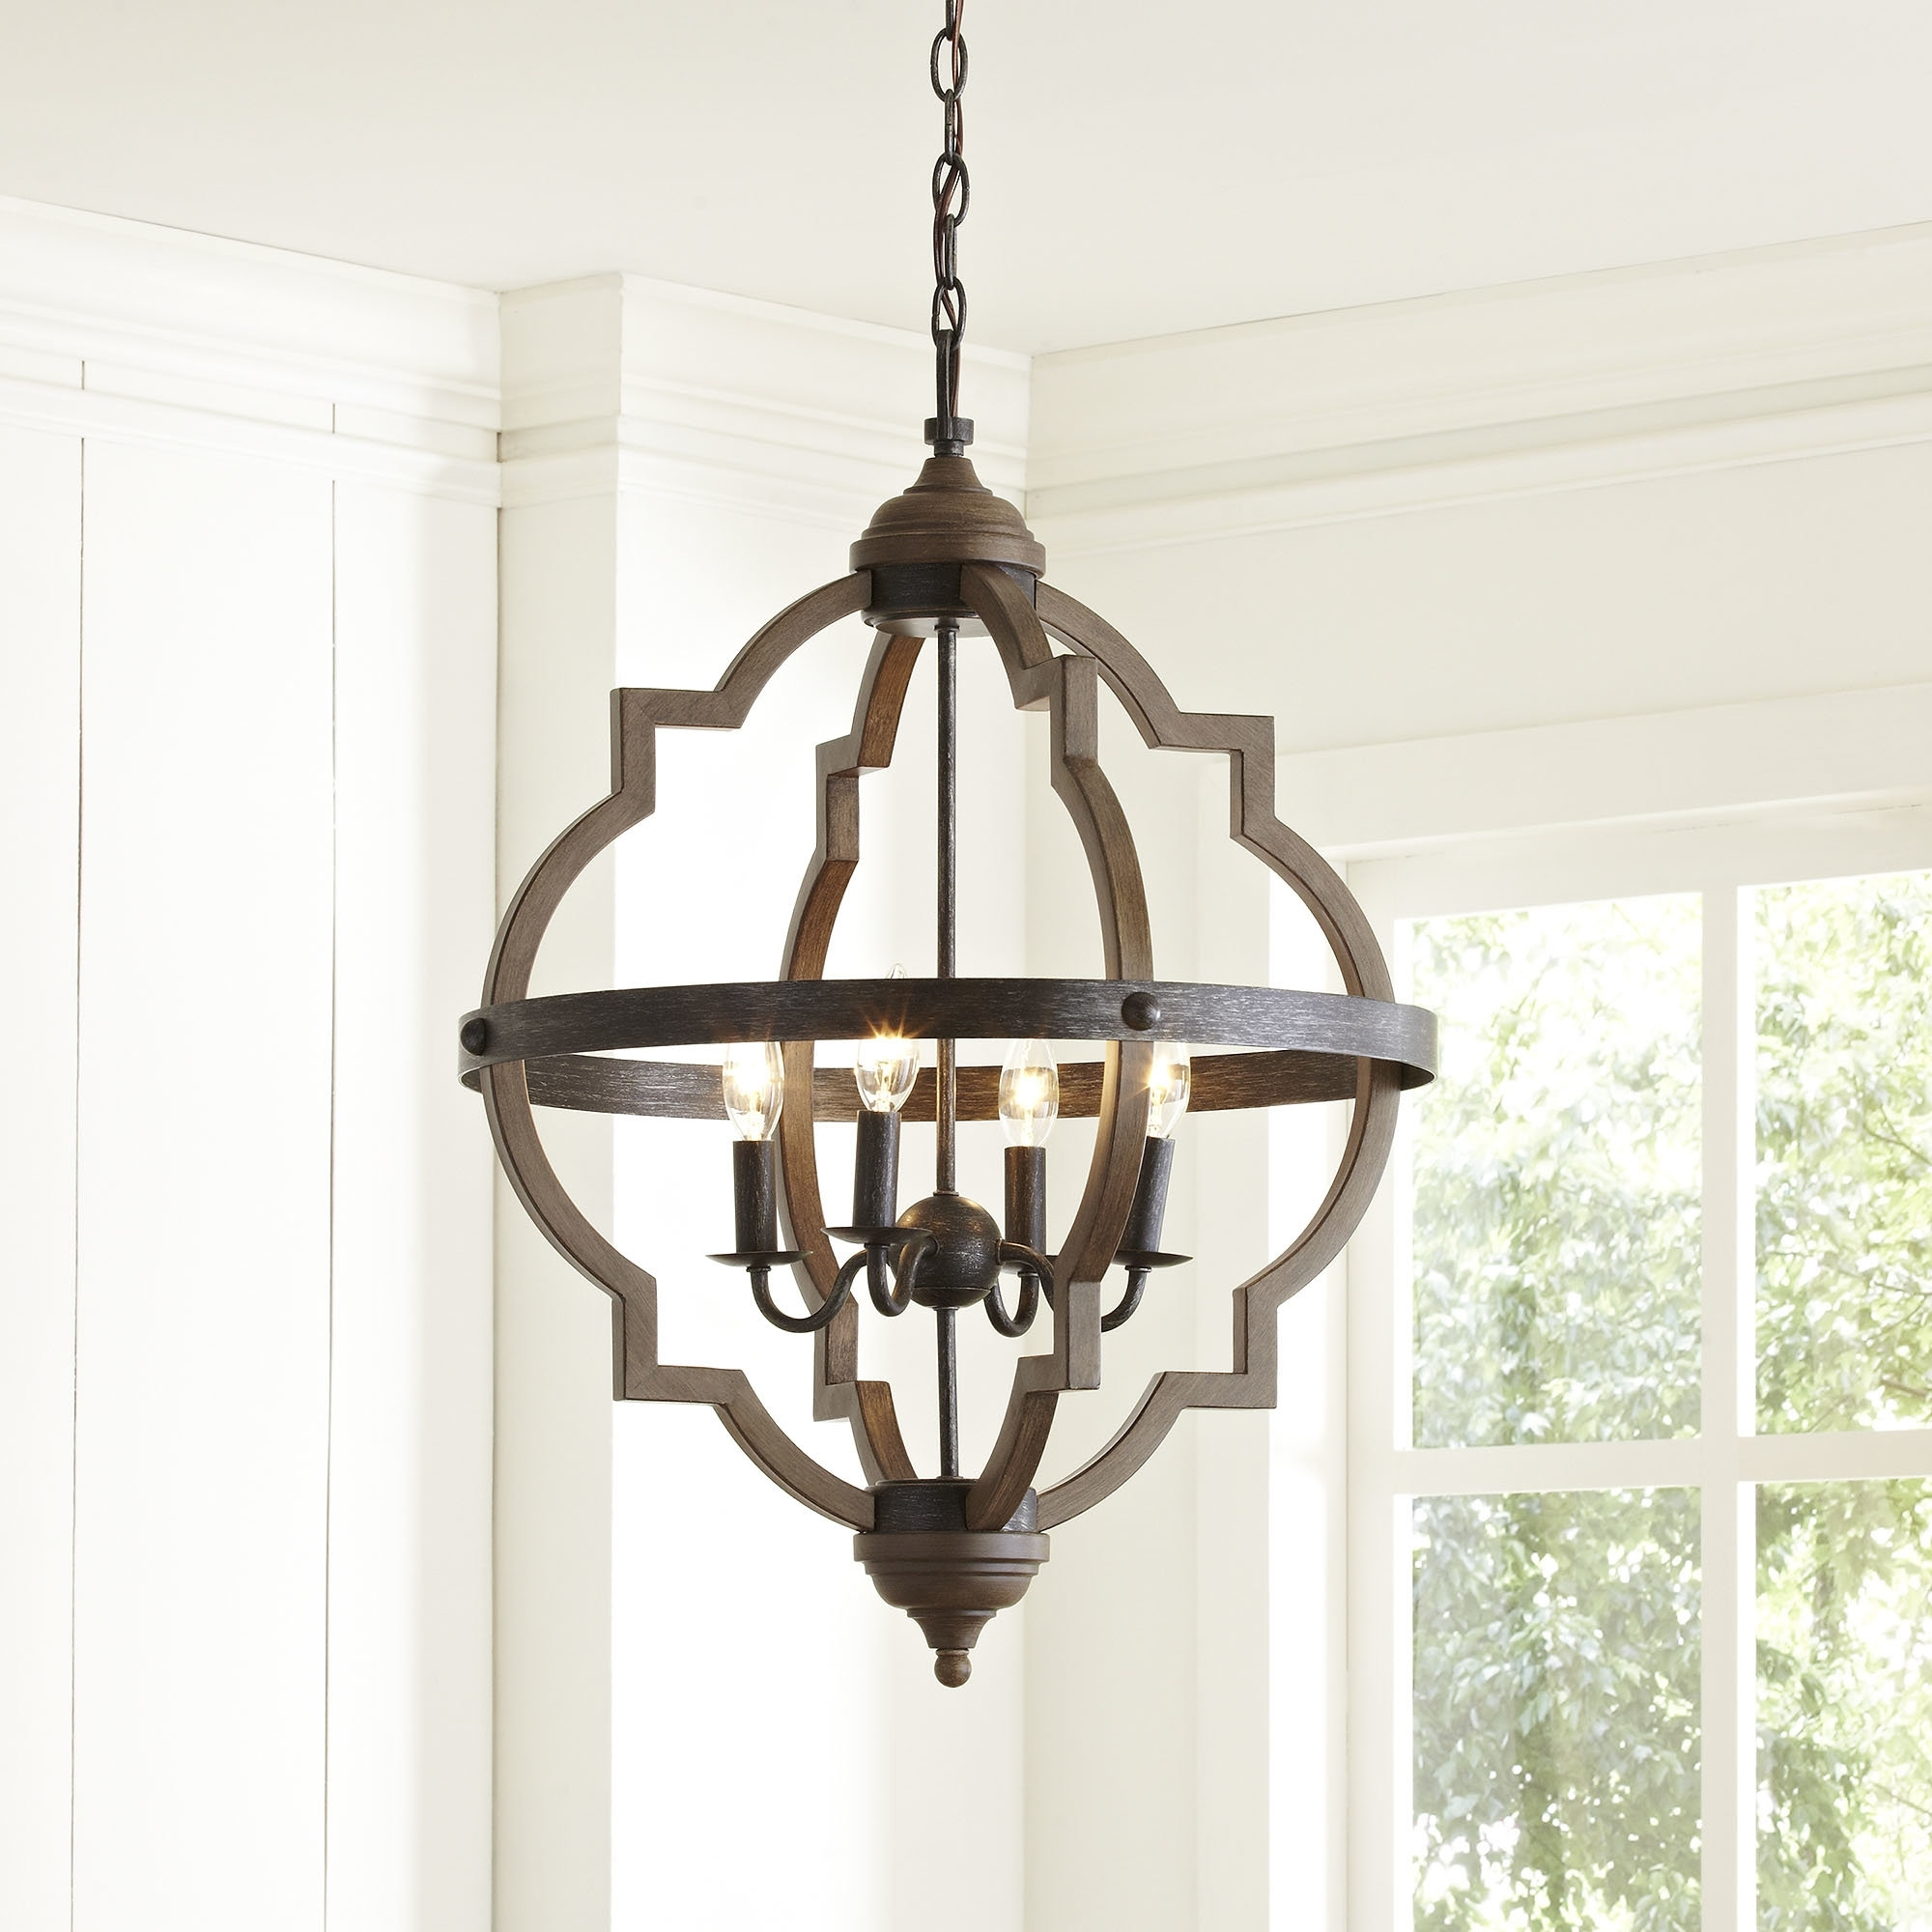 Wayfair Chandeliers Intended For Fashionable Stunning Design Ideas Wayfair Lighting Chandeliers Decoration You Ll (View 18 of 20)